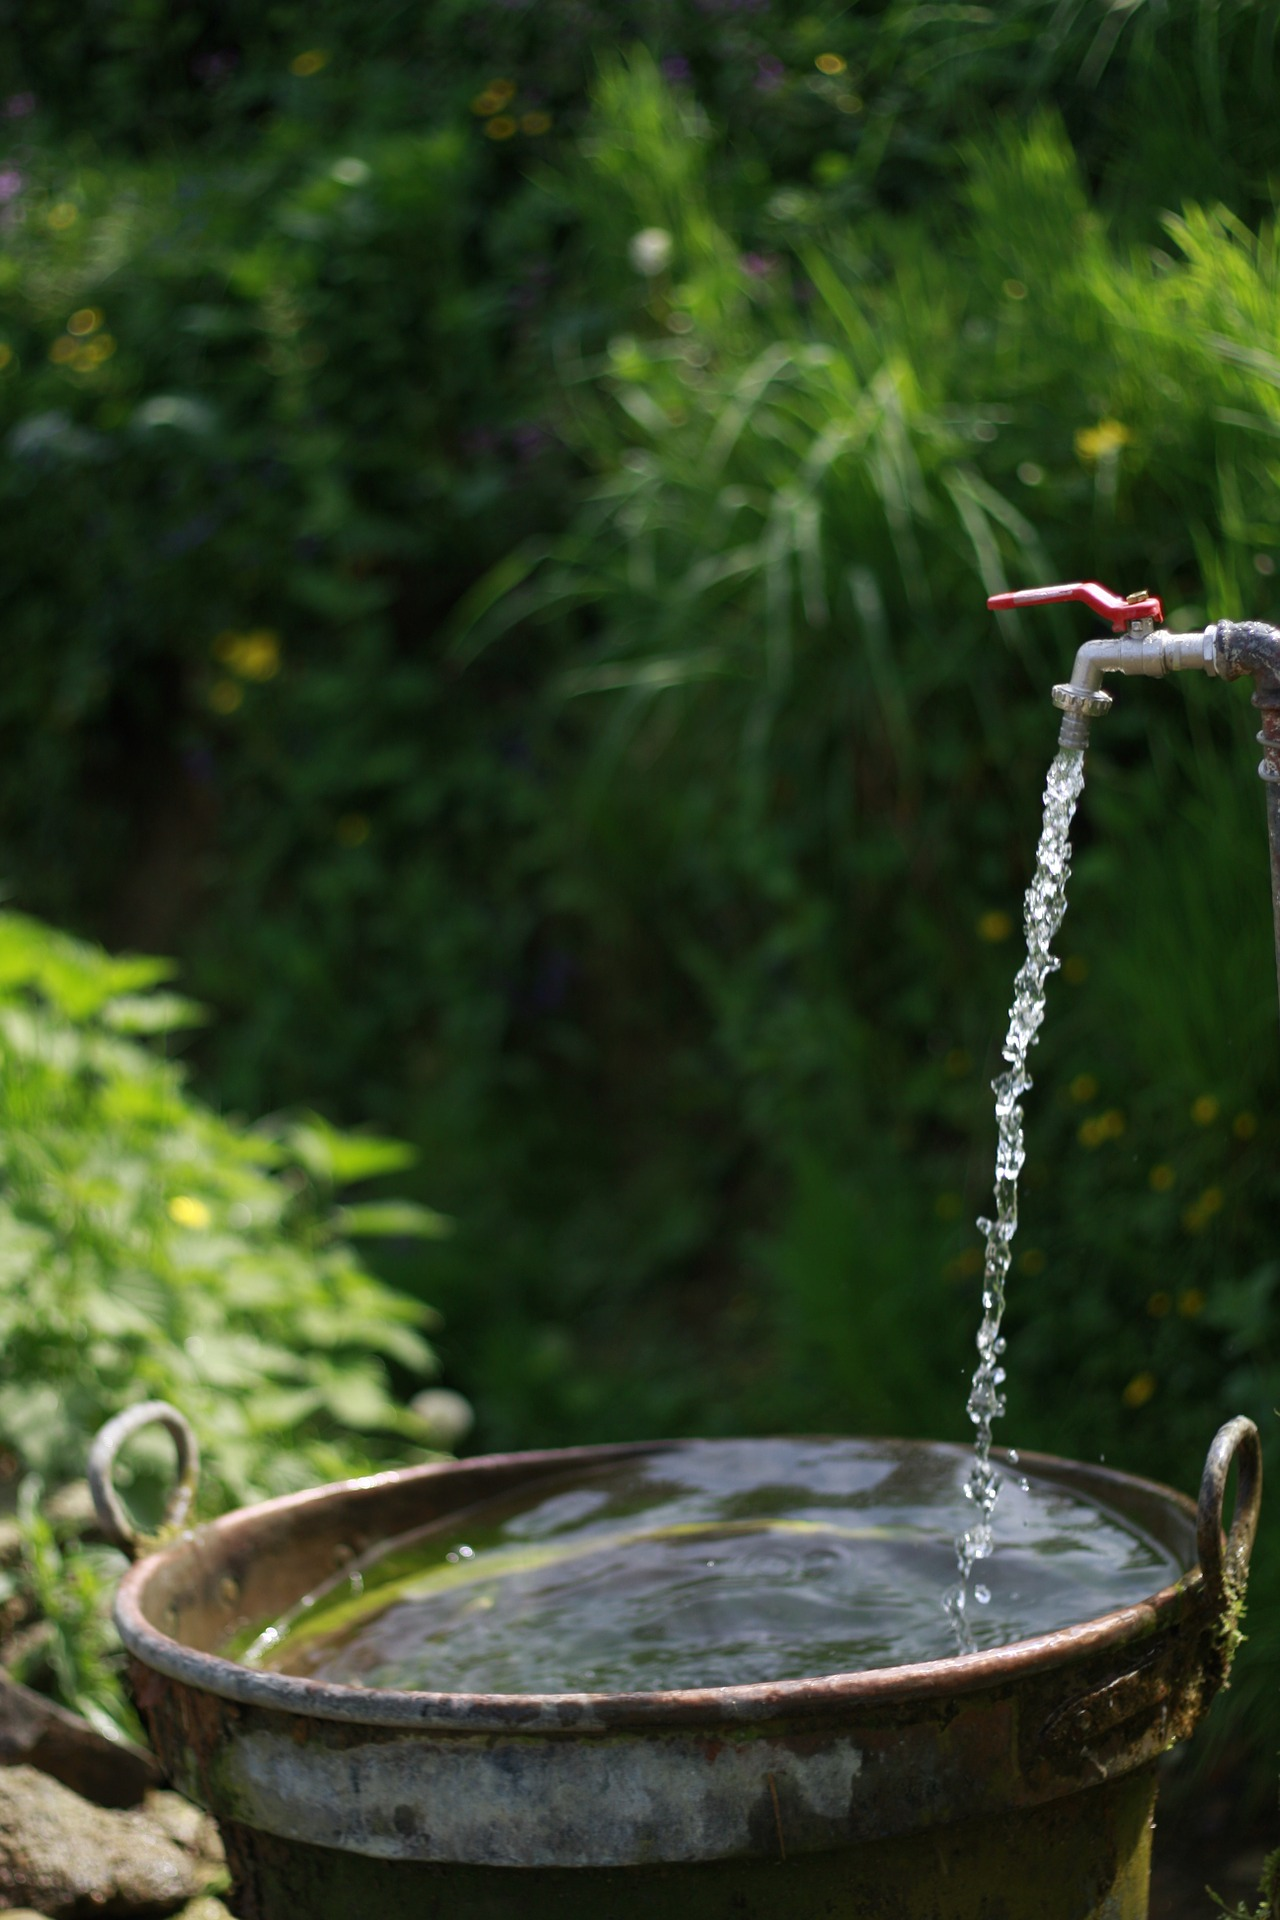 How your lawn chemicals are hurting the water supply